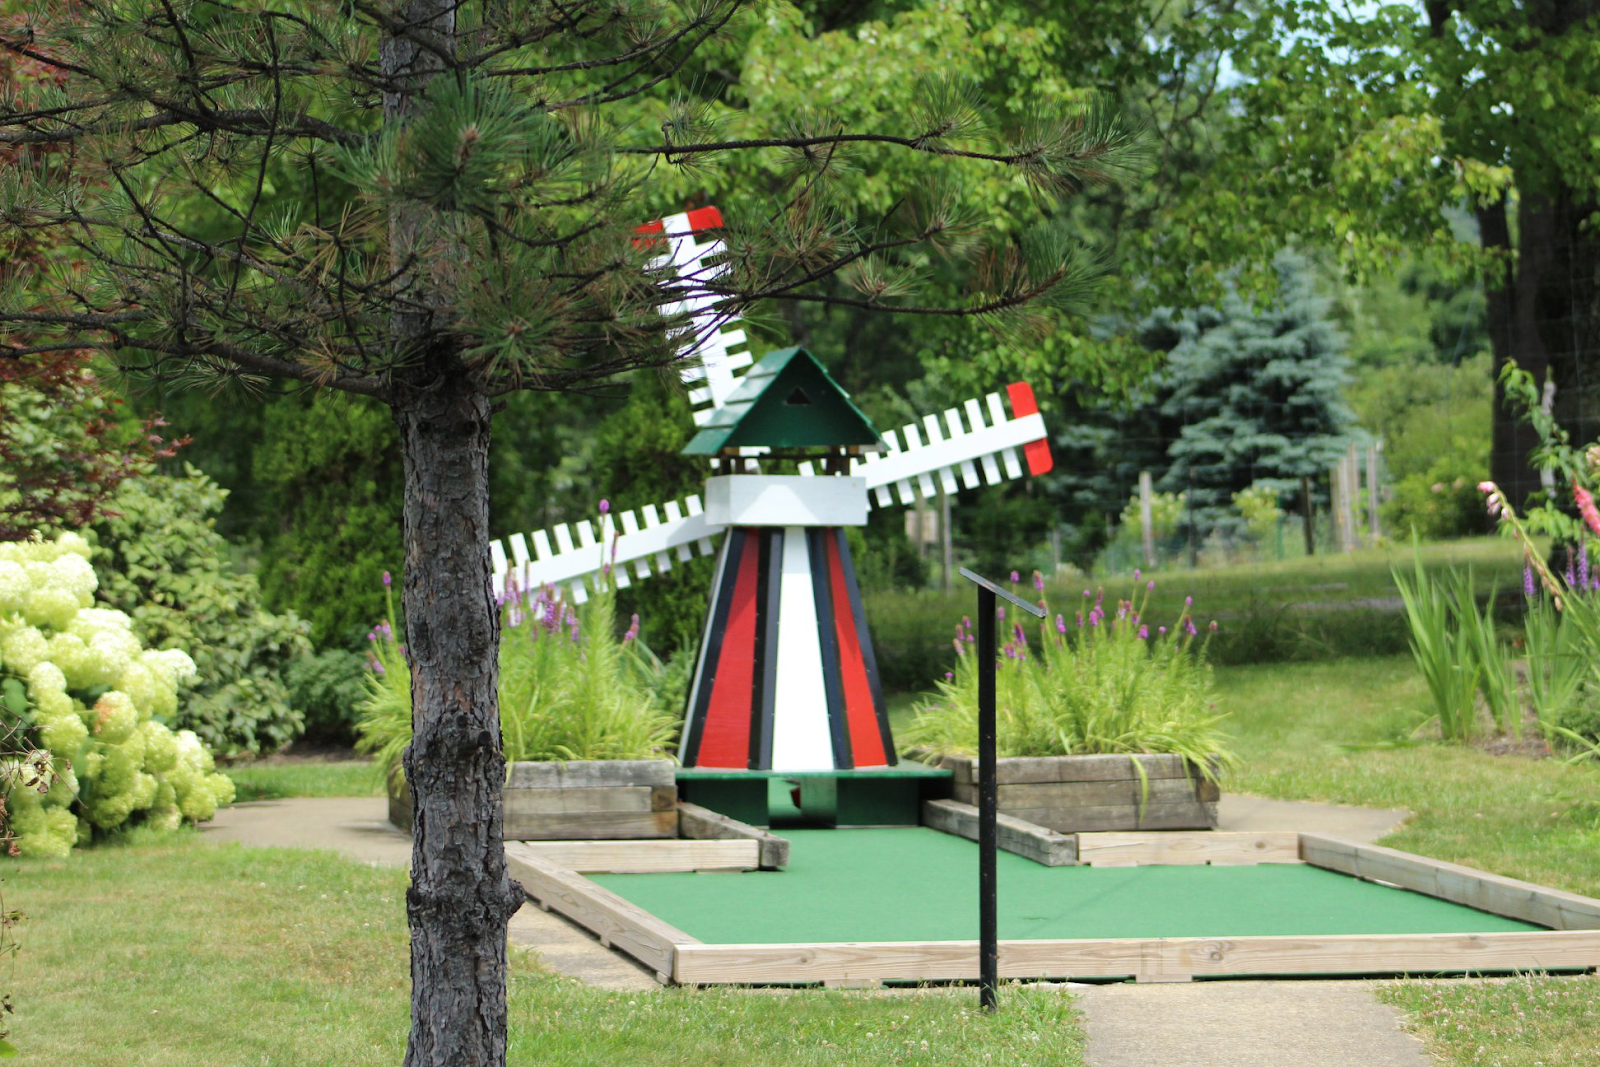 North Park mini golf